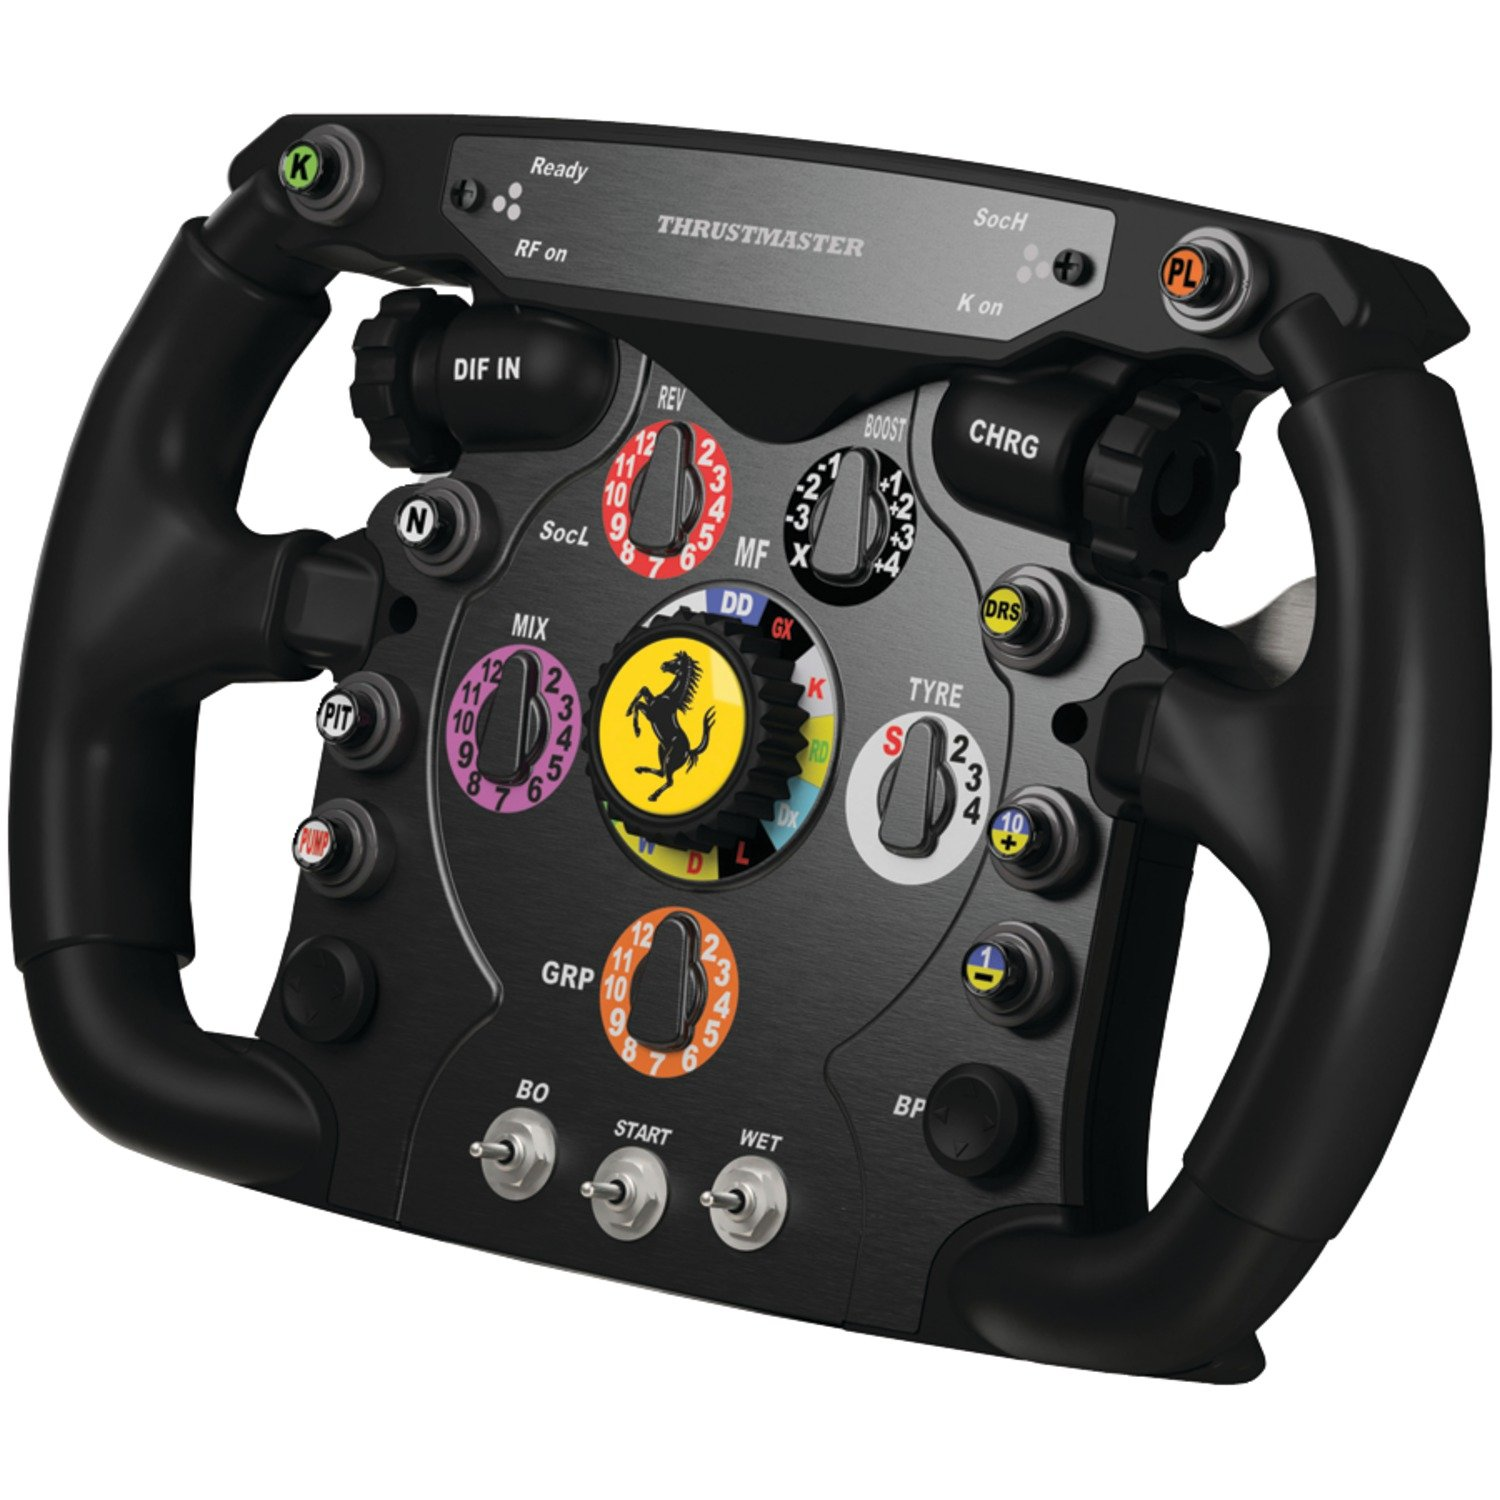 Top Race Wheels And Add Ons To Purchase For F1 2015 On